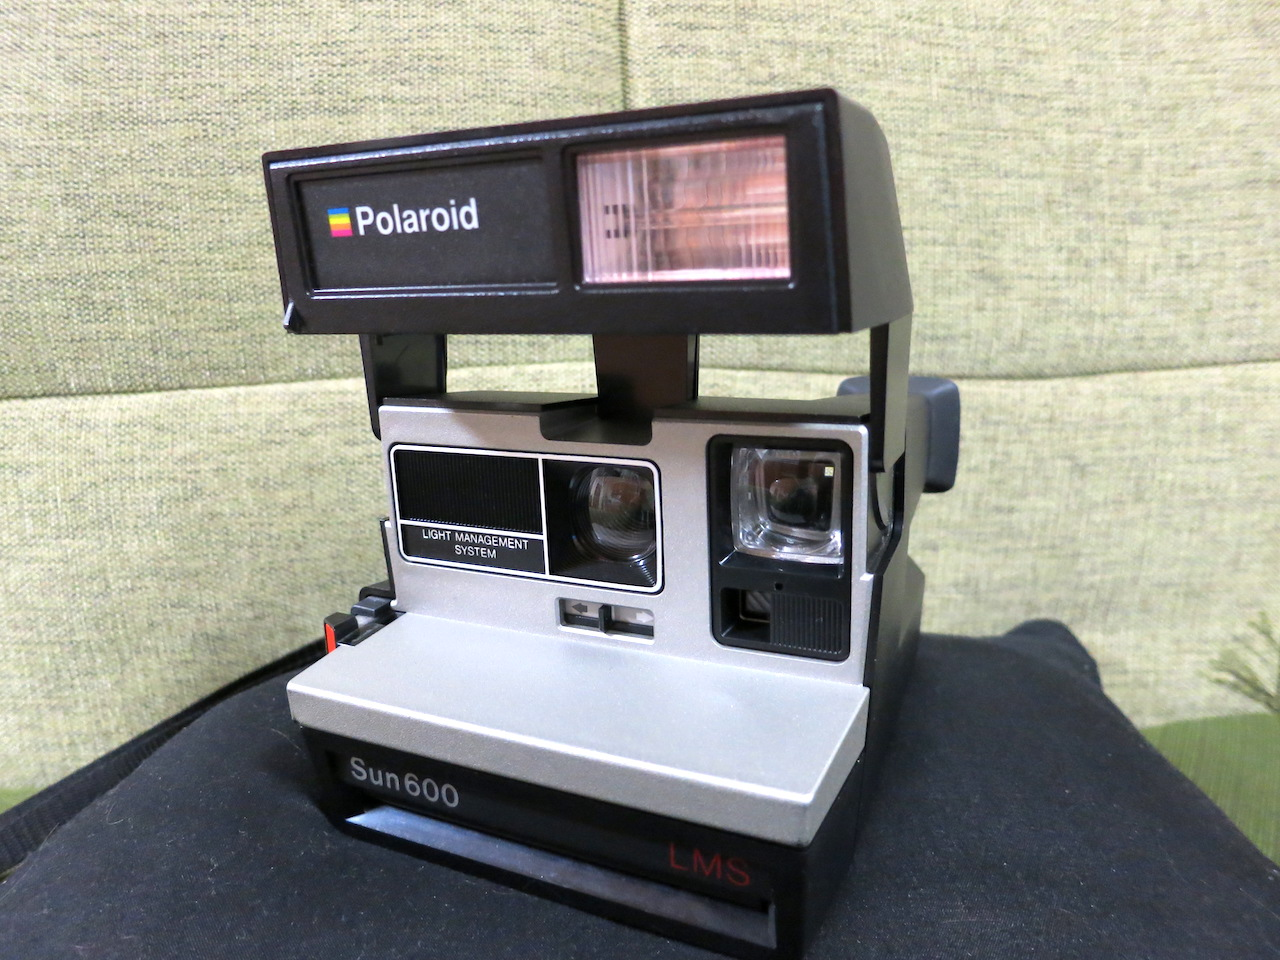 Polaroid Sun 600 vs Instax mini 8